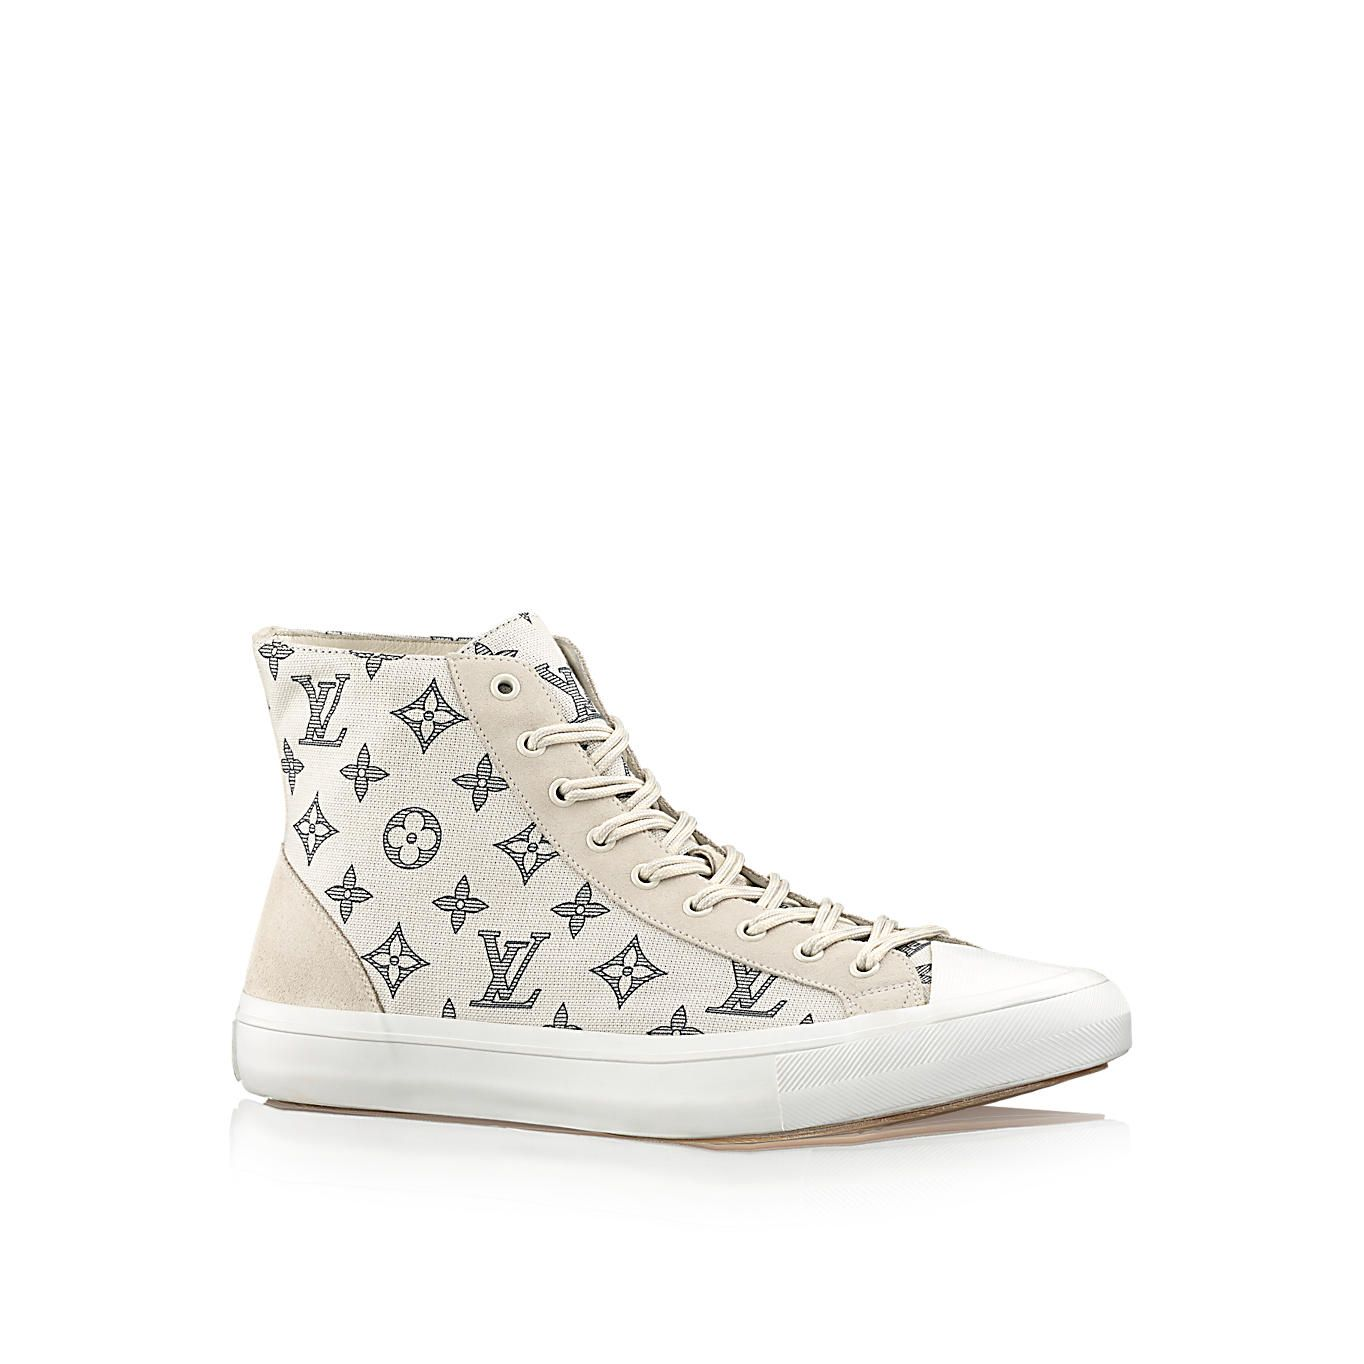 a17ca078d353 Tattoo Sneaker Boot in Men s Fashion Shows collections by Louis Vuitton